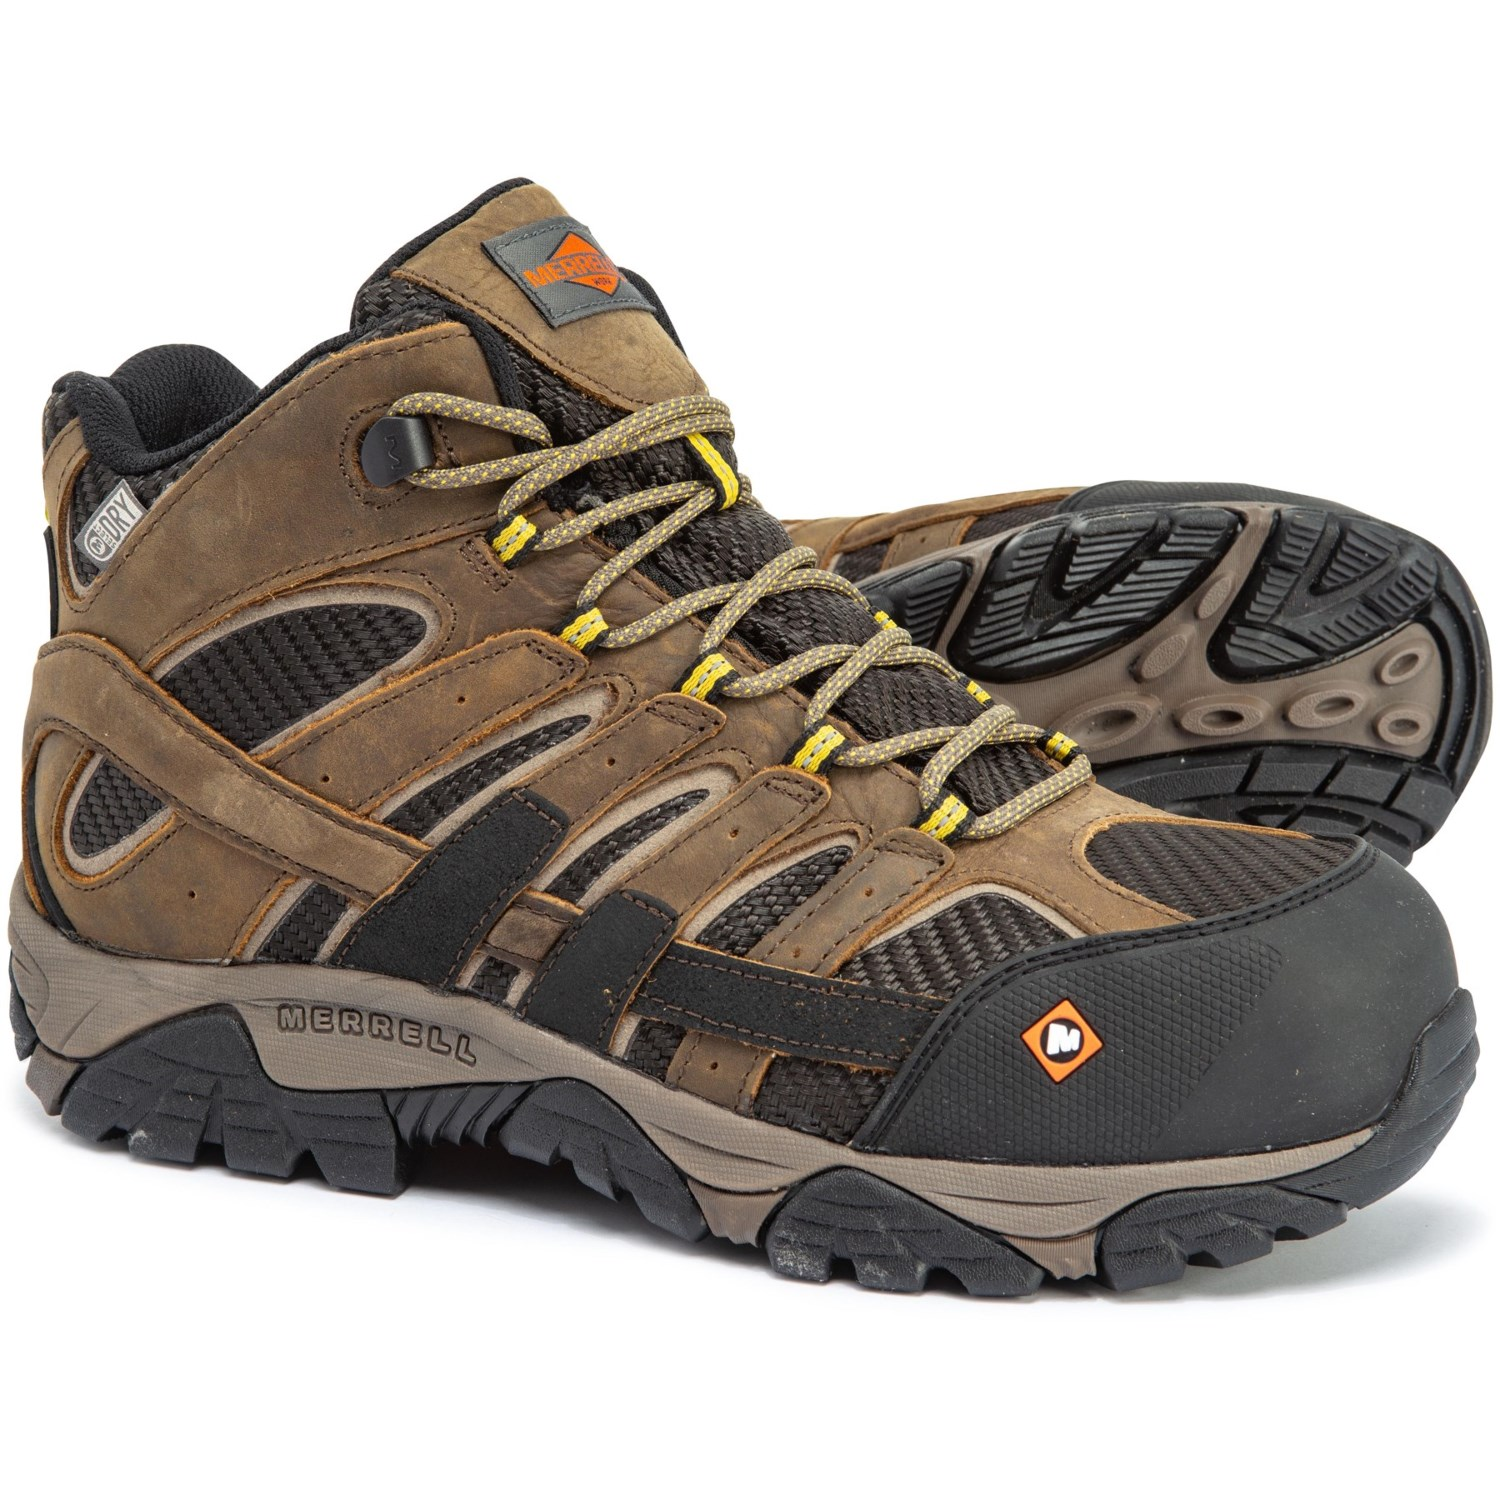 d4b0d626 Merrell Moab 2 Vent Work Boots (For Men) - Save 54%